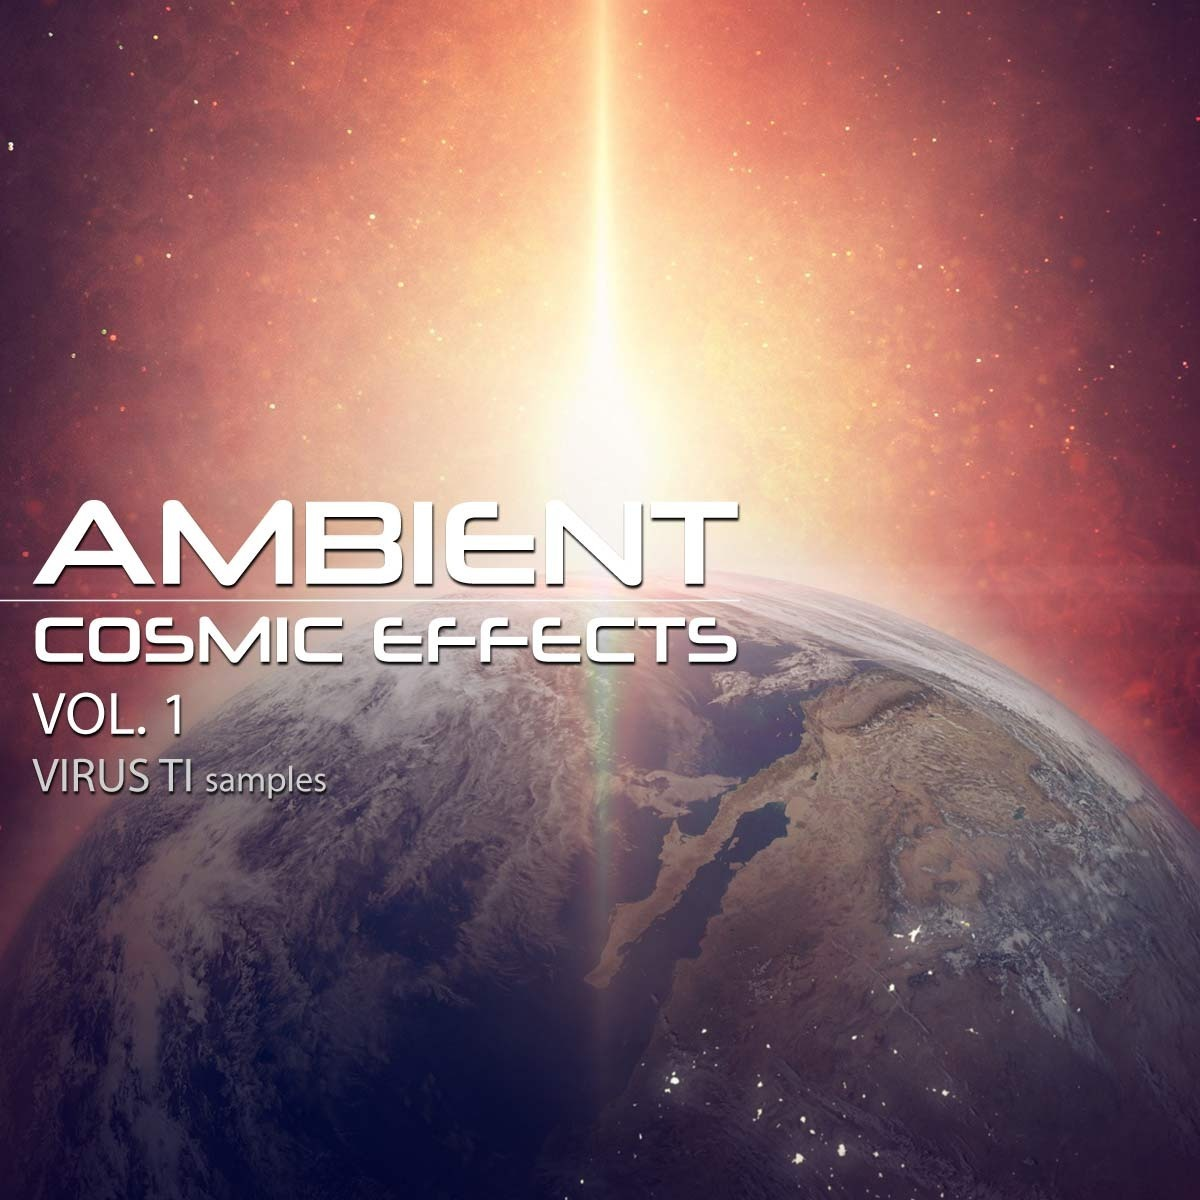 Ambient Cosmic Effects Vol 1